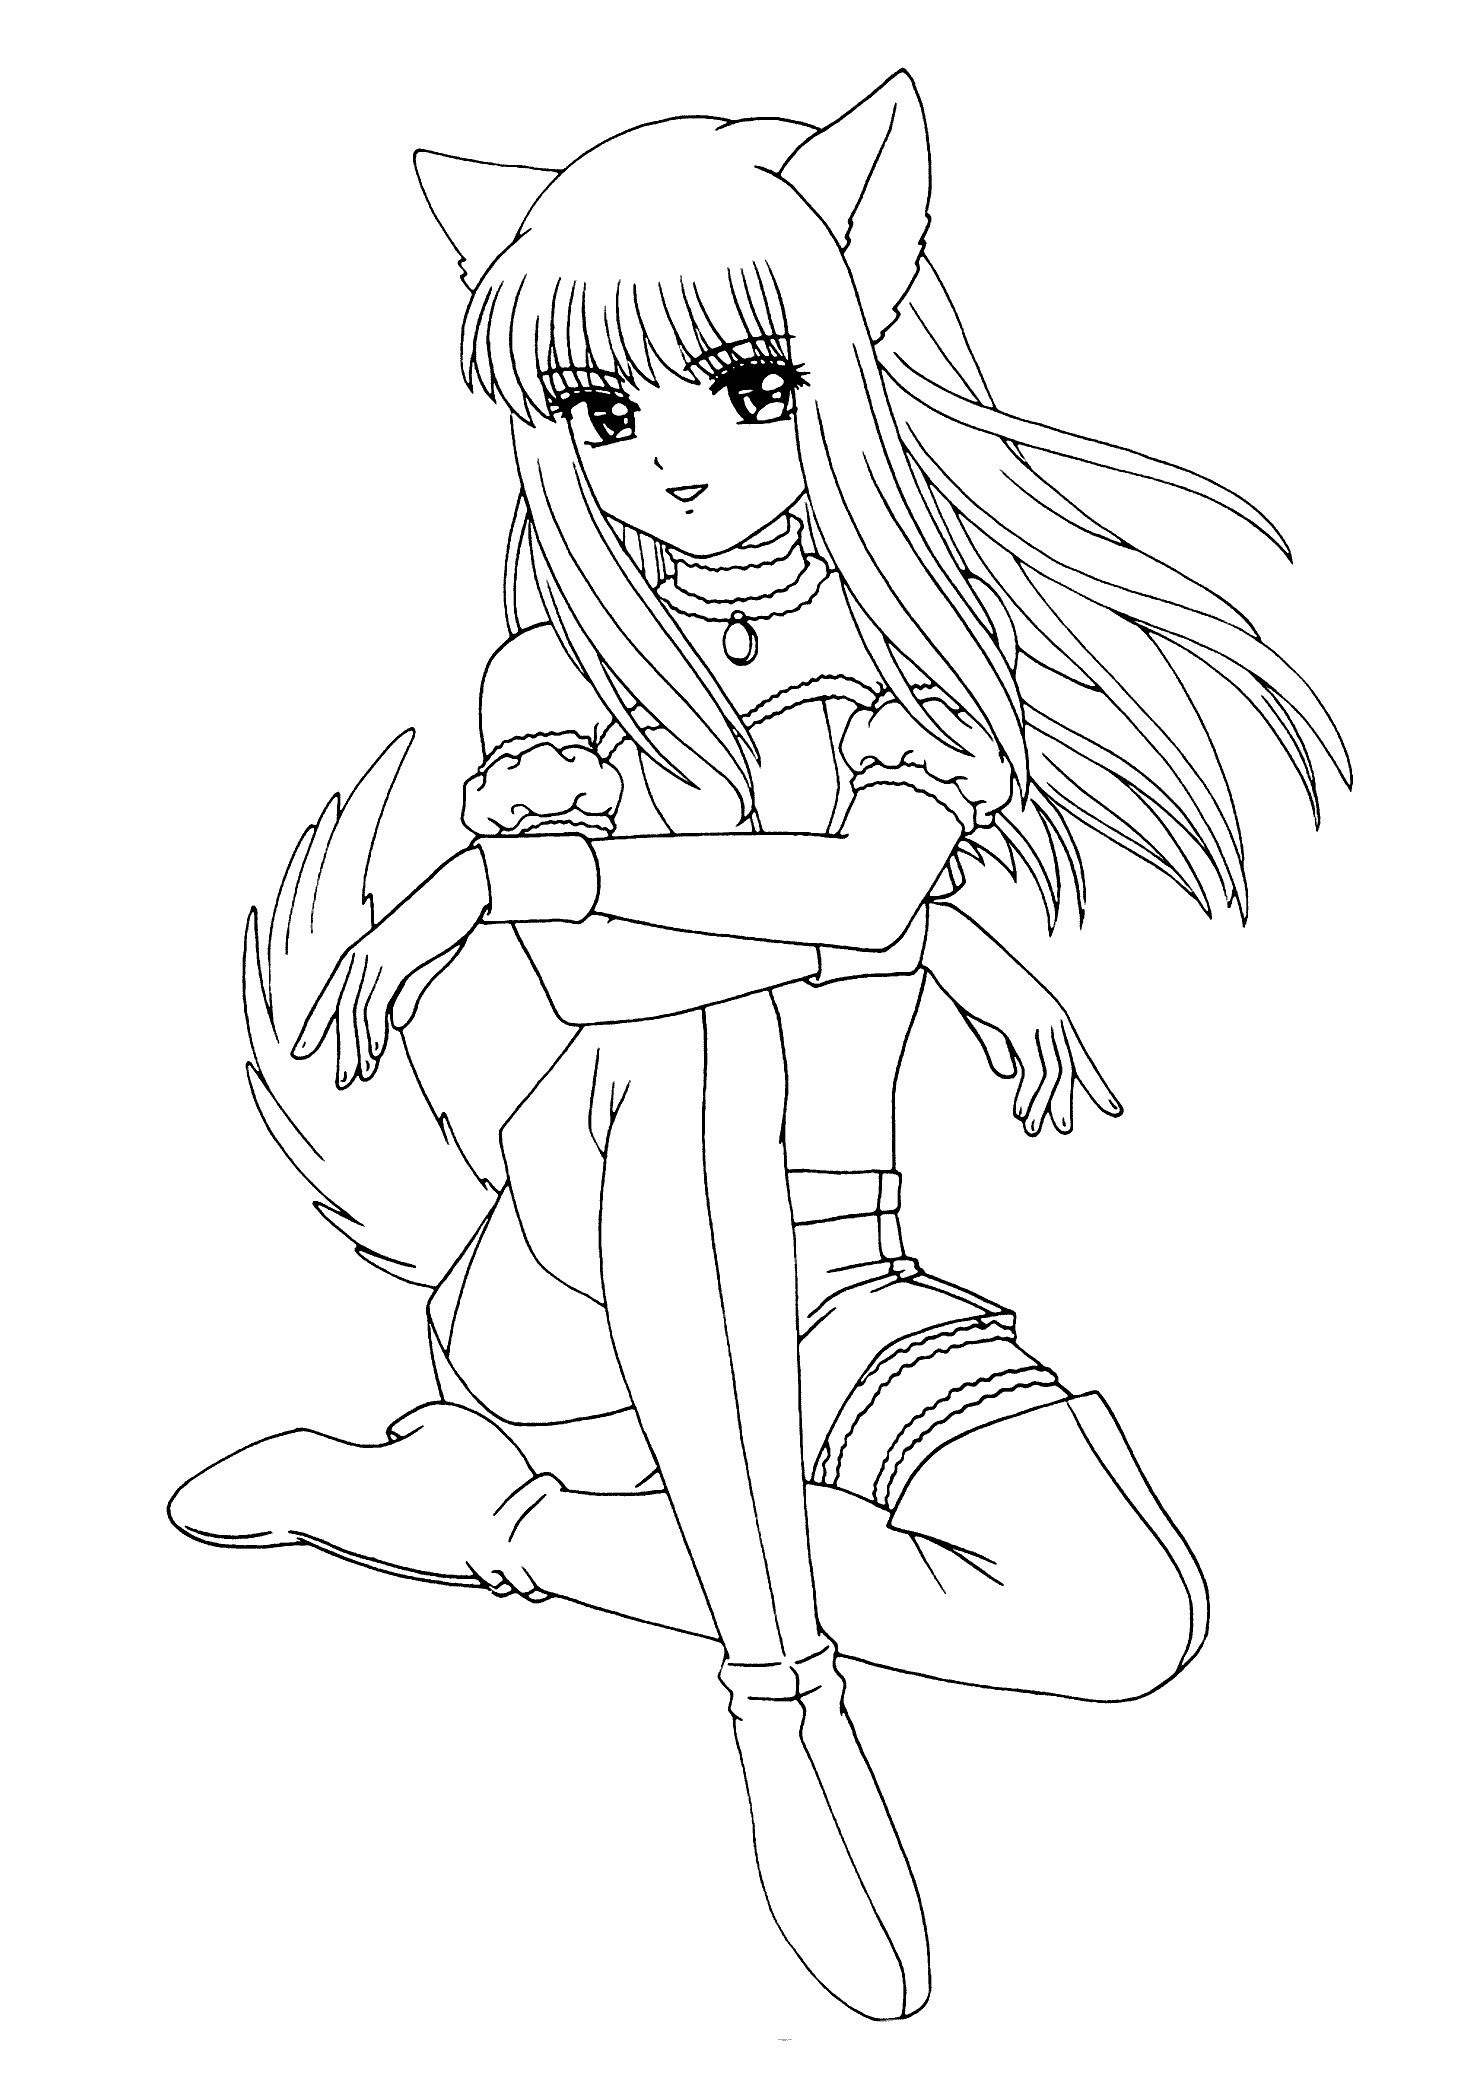 Cute Anime Chibi Girl Coloring Pages Free Cute Anime Chibi Girl